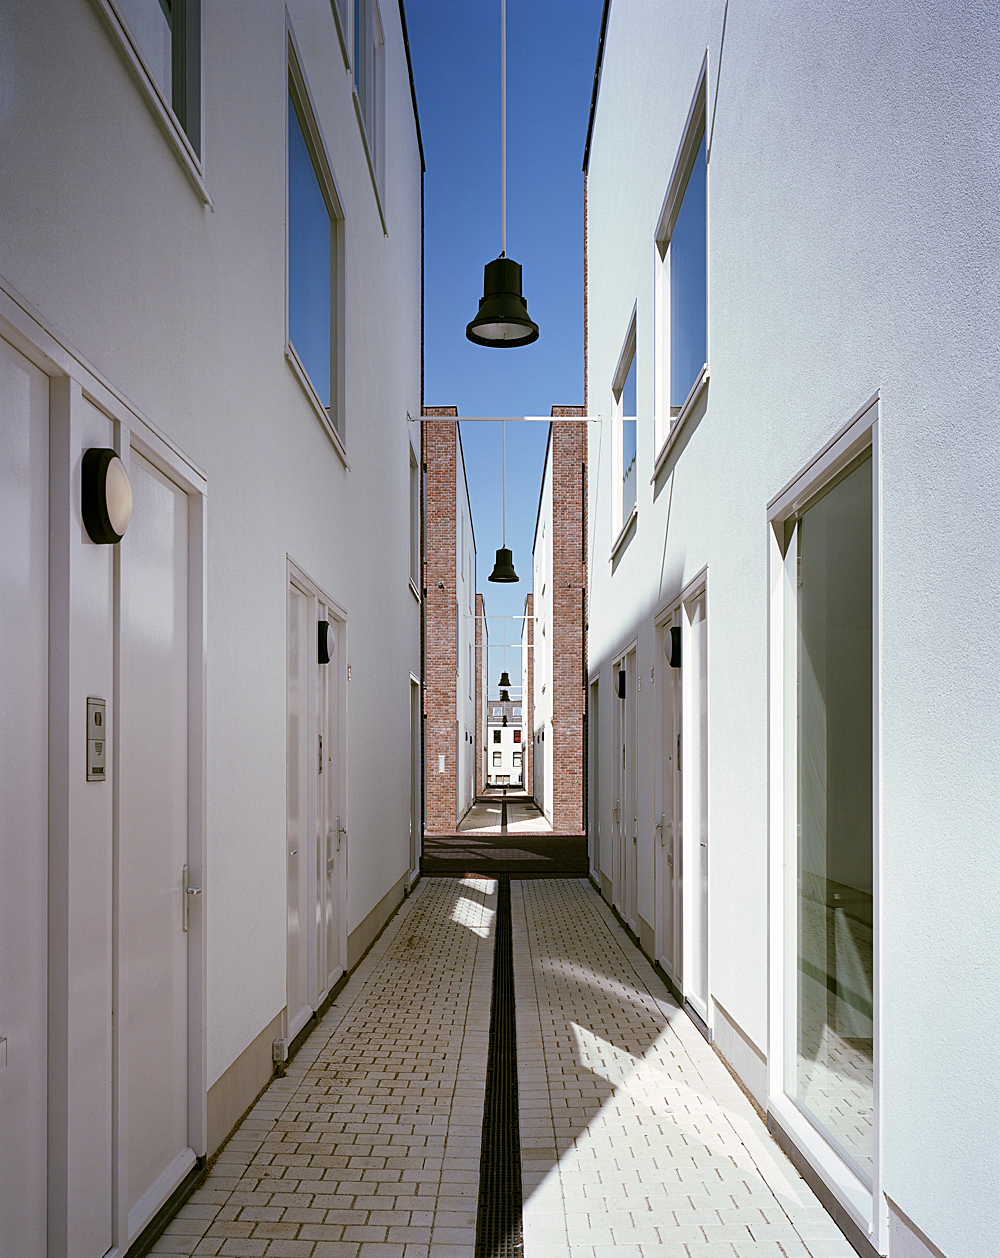 bright white alley facades with large windows and main entrances to the houses, ensure liveliness and interaction